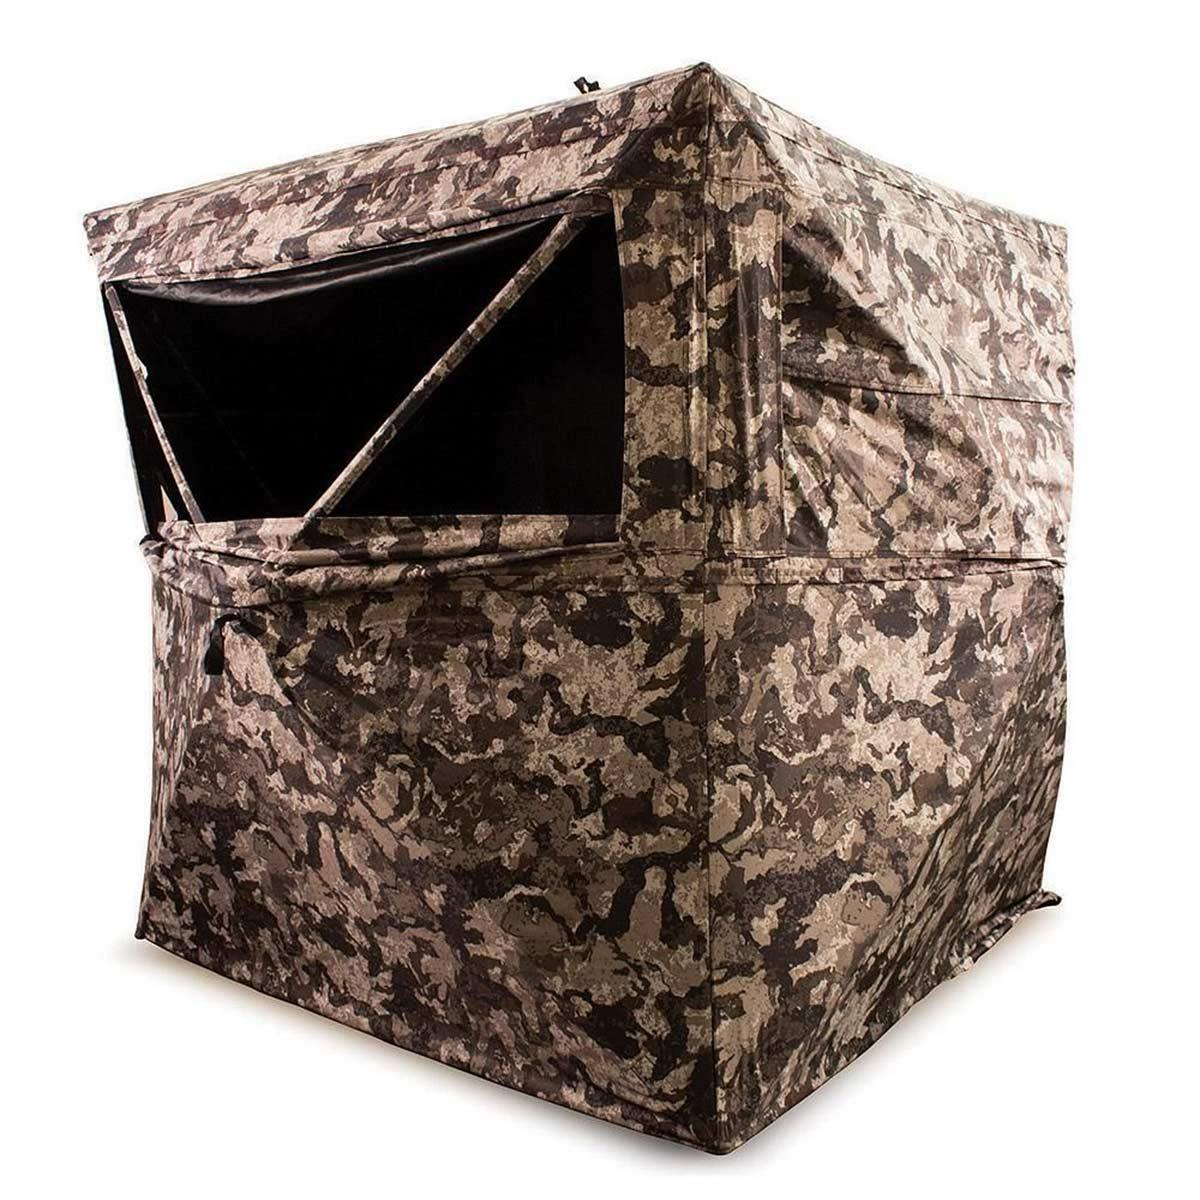 HME Products Executioner 3-Person Hub Ground Blind_1.jpg